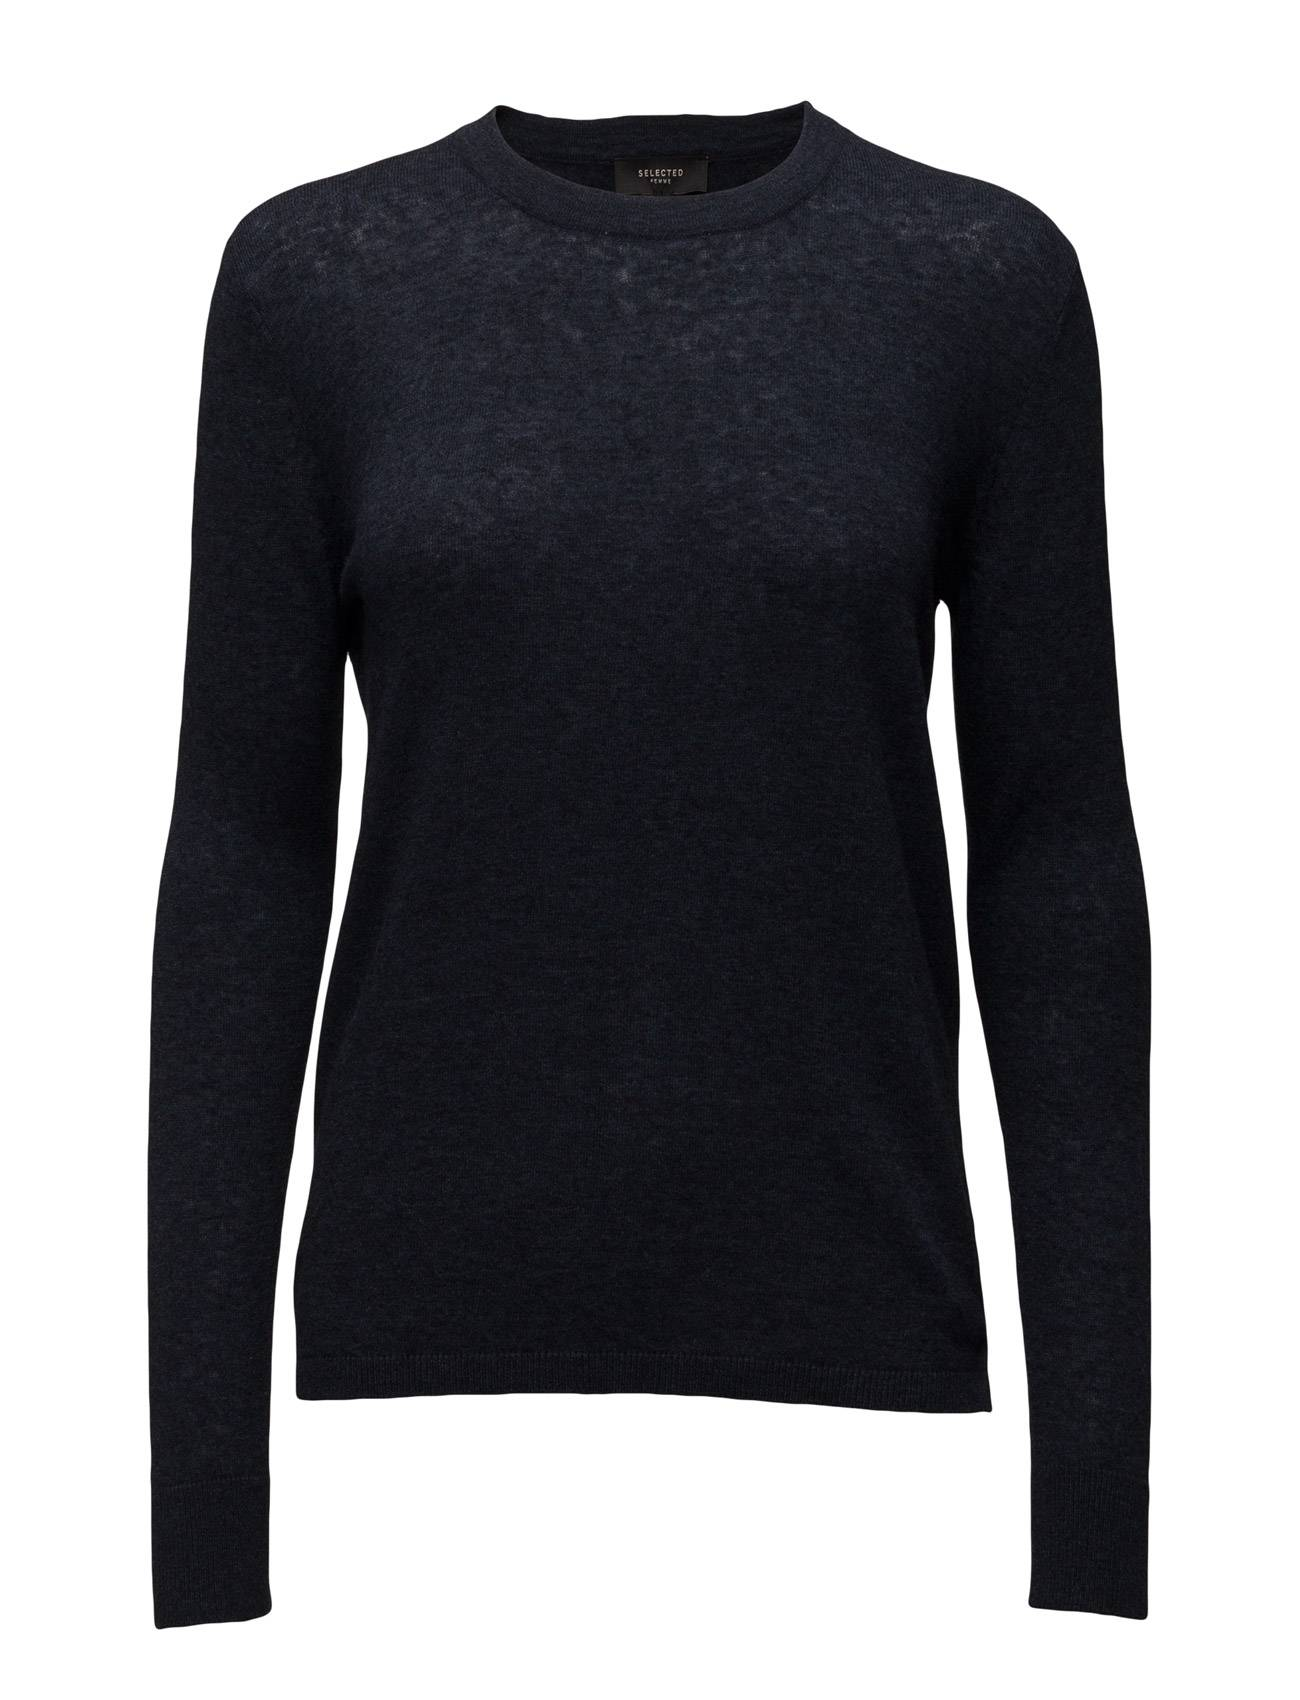 Selected Femme Sfmaia Ls Knit Pullover Noos